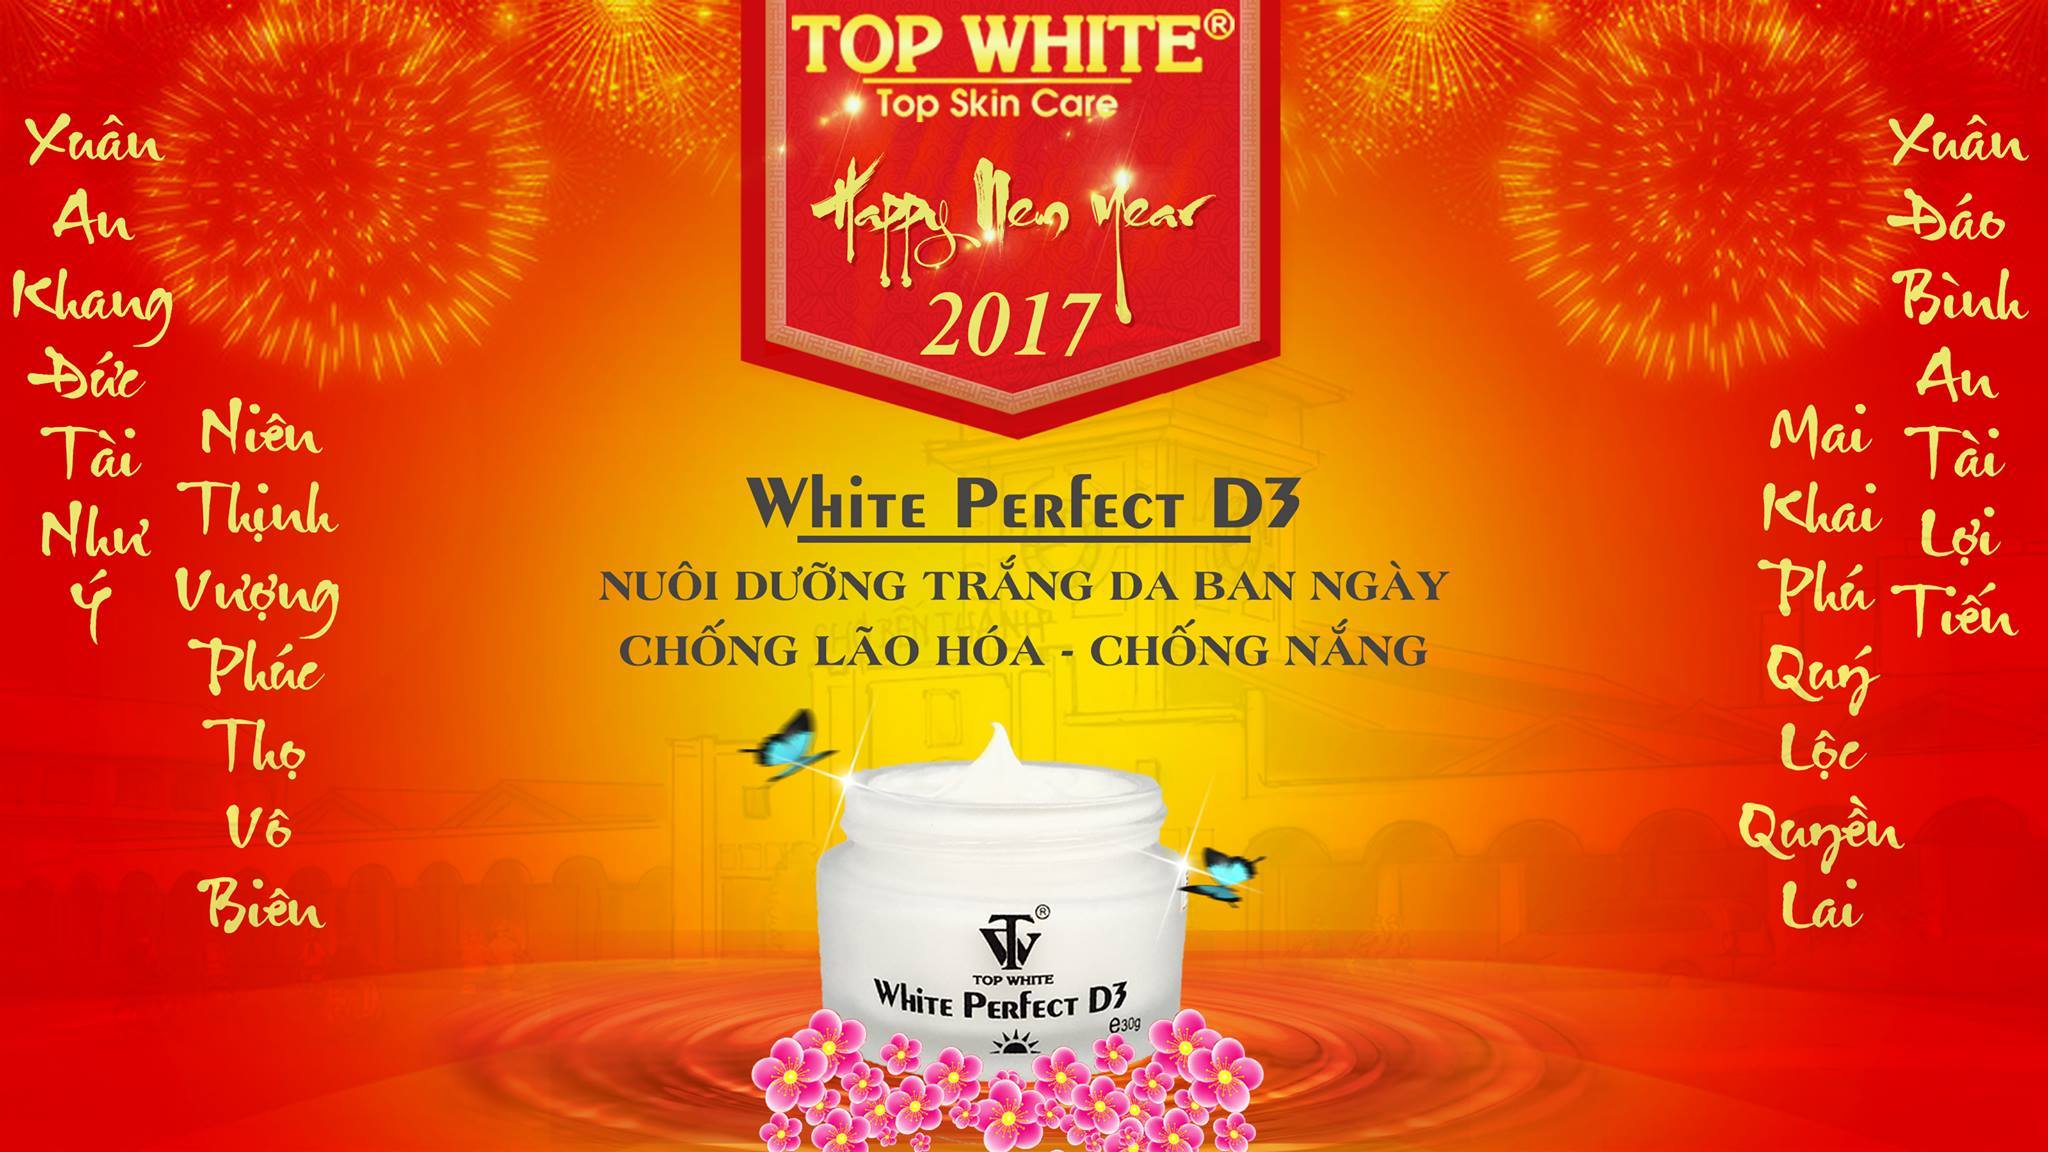 Top White kem chống nắng White Perfect D3